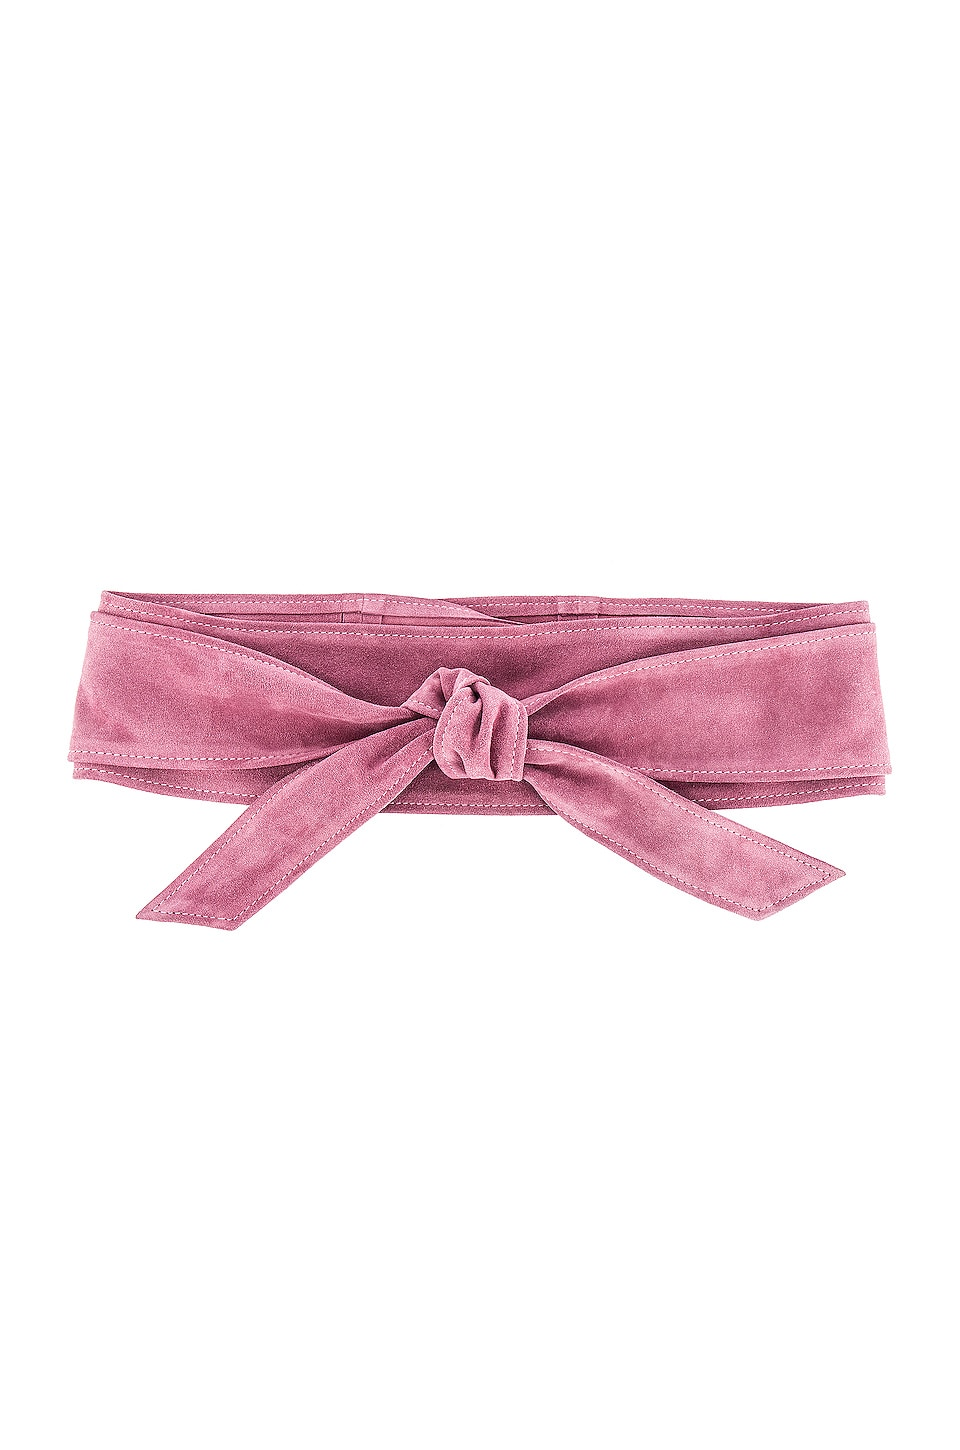 IRO Simply2 Belt in Pink